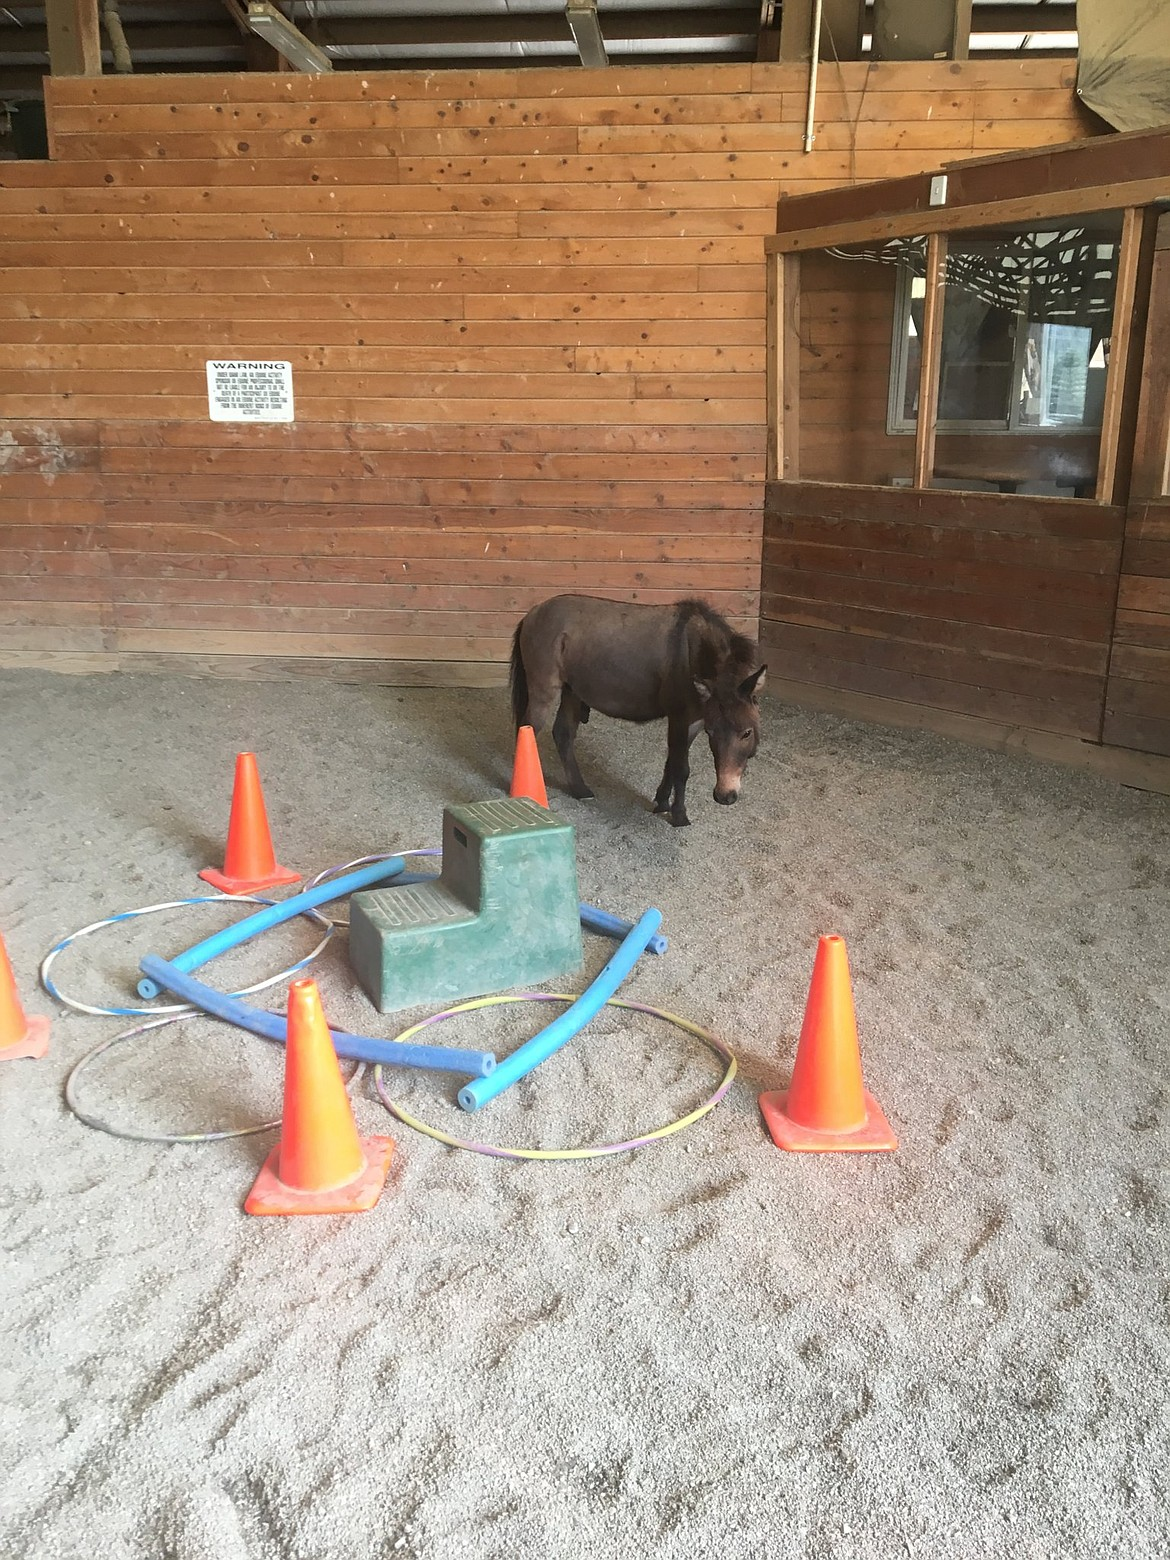 A donkey interacts with a space built by a client to represent their anger. Horses' (and donkeys') responses to clients' work can help clients find deeper meaning based on their interpretation of animals' actions.